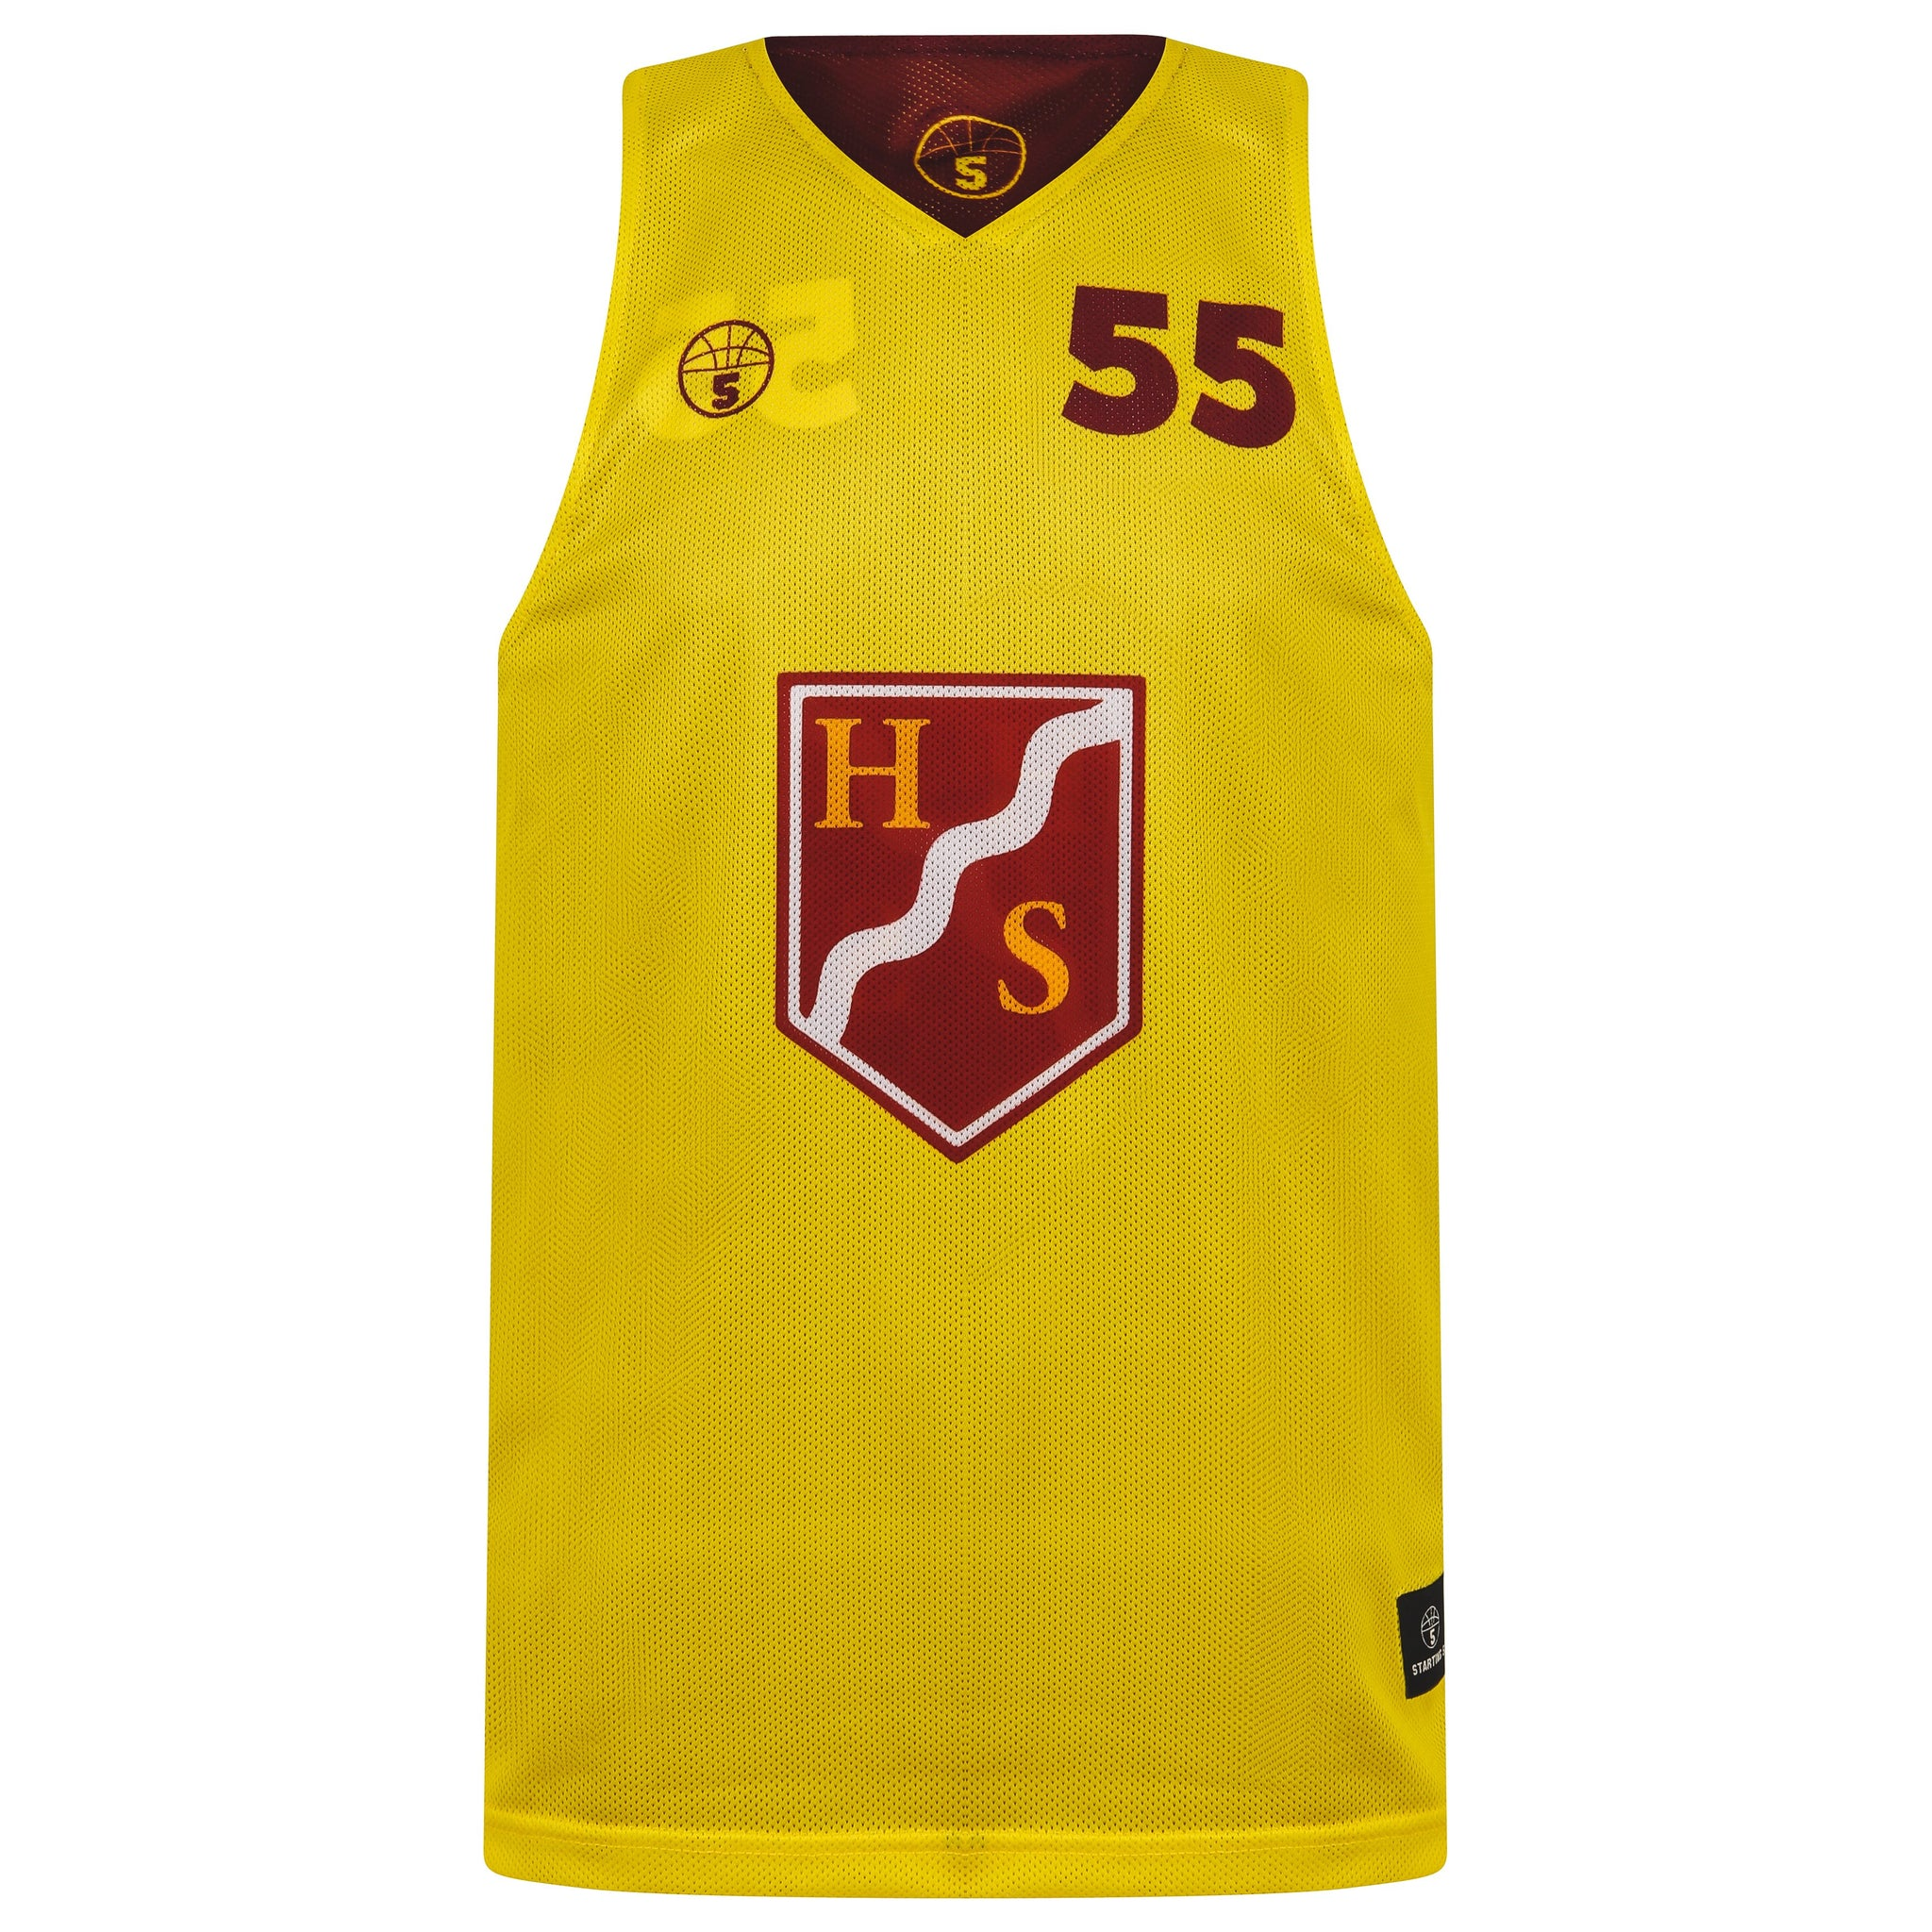 STARTING 5 Sublimated Mesh Basketball Reversible Training Vest - You design it! (Min order 25) - Example 5